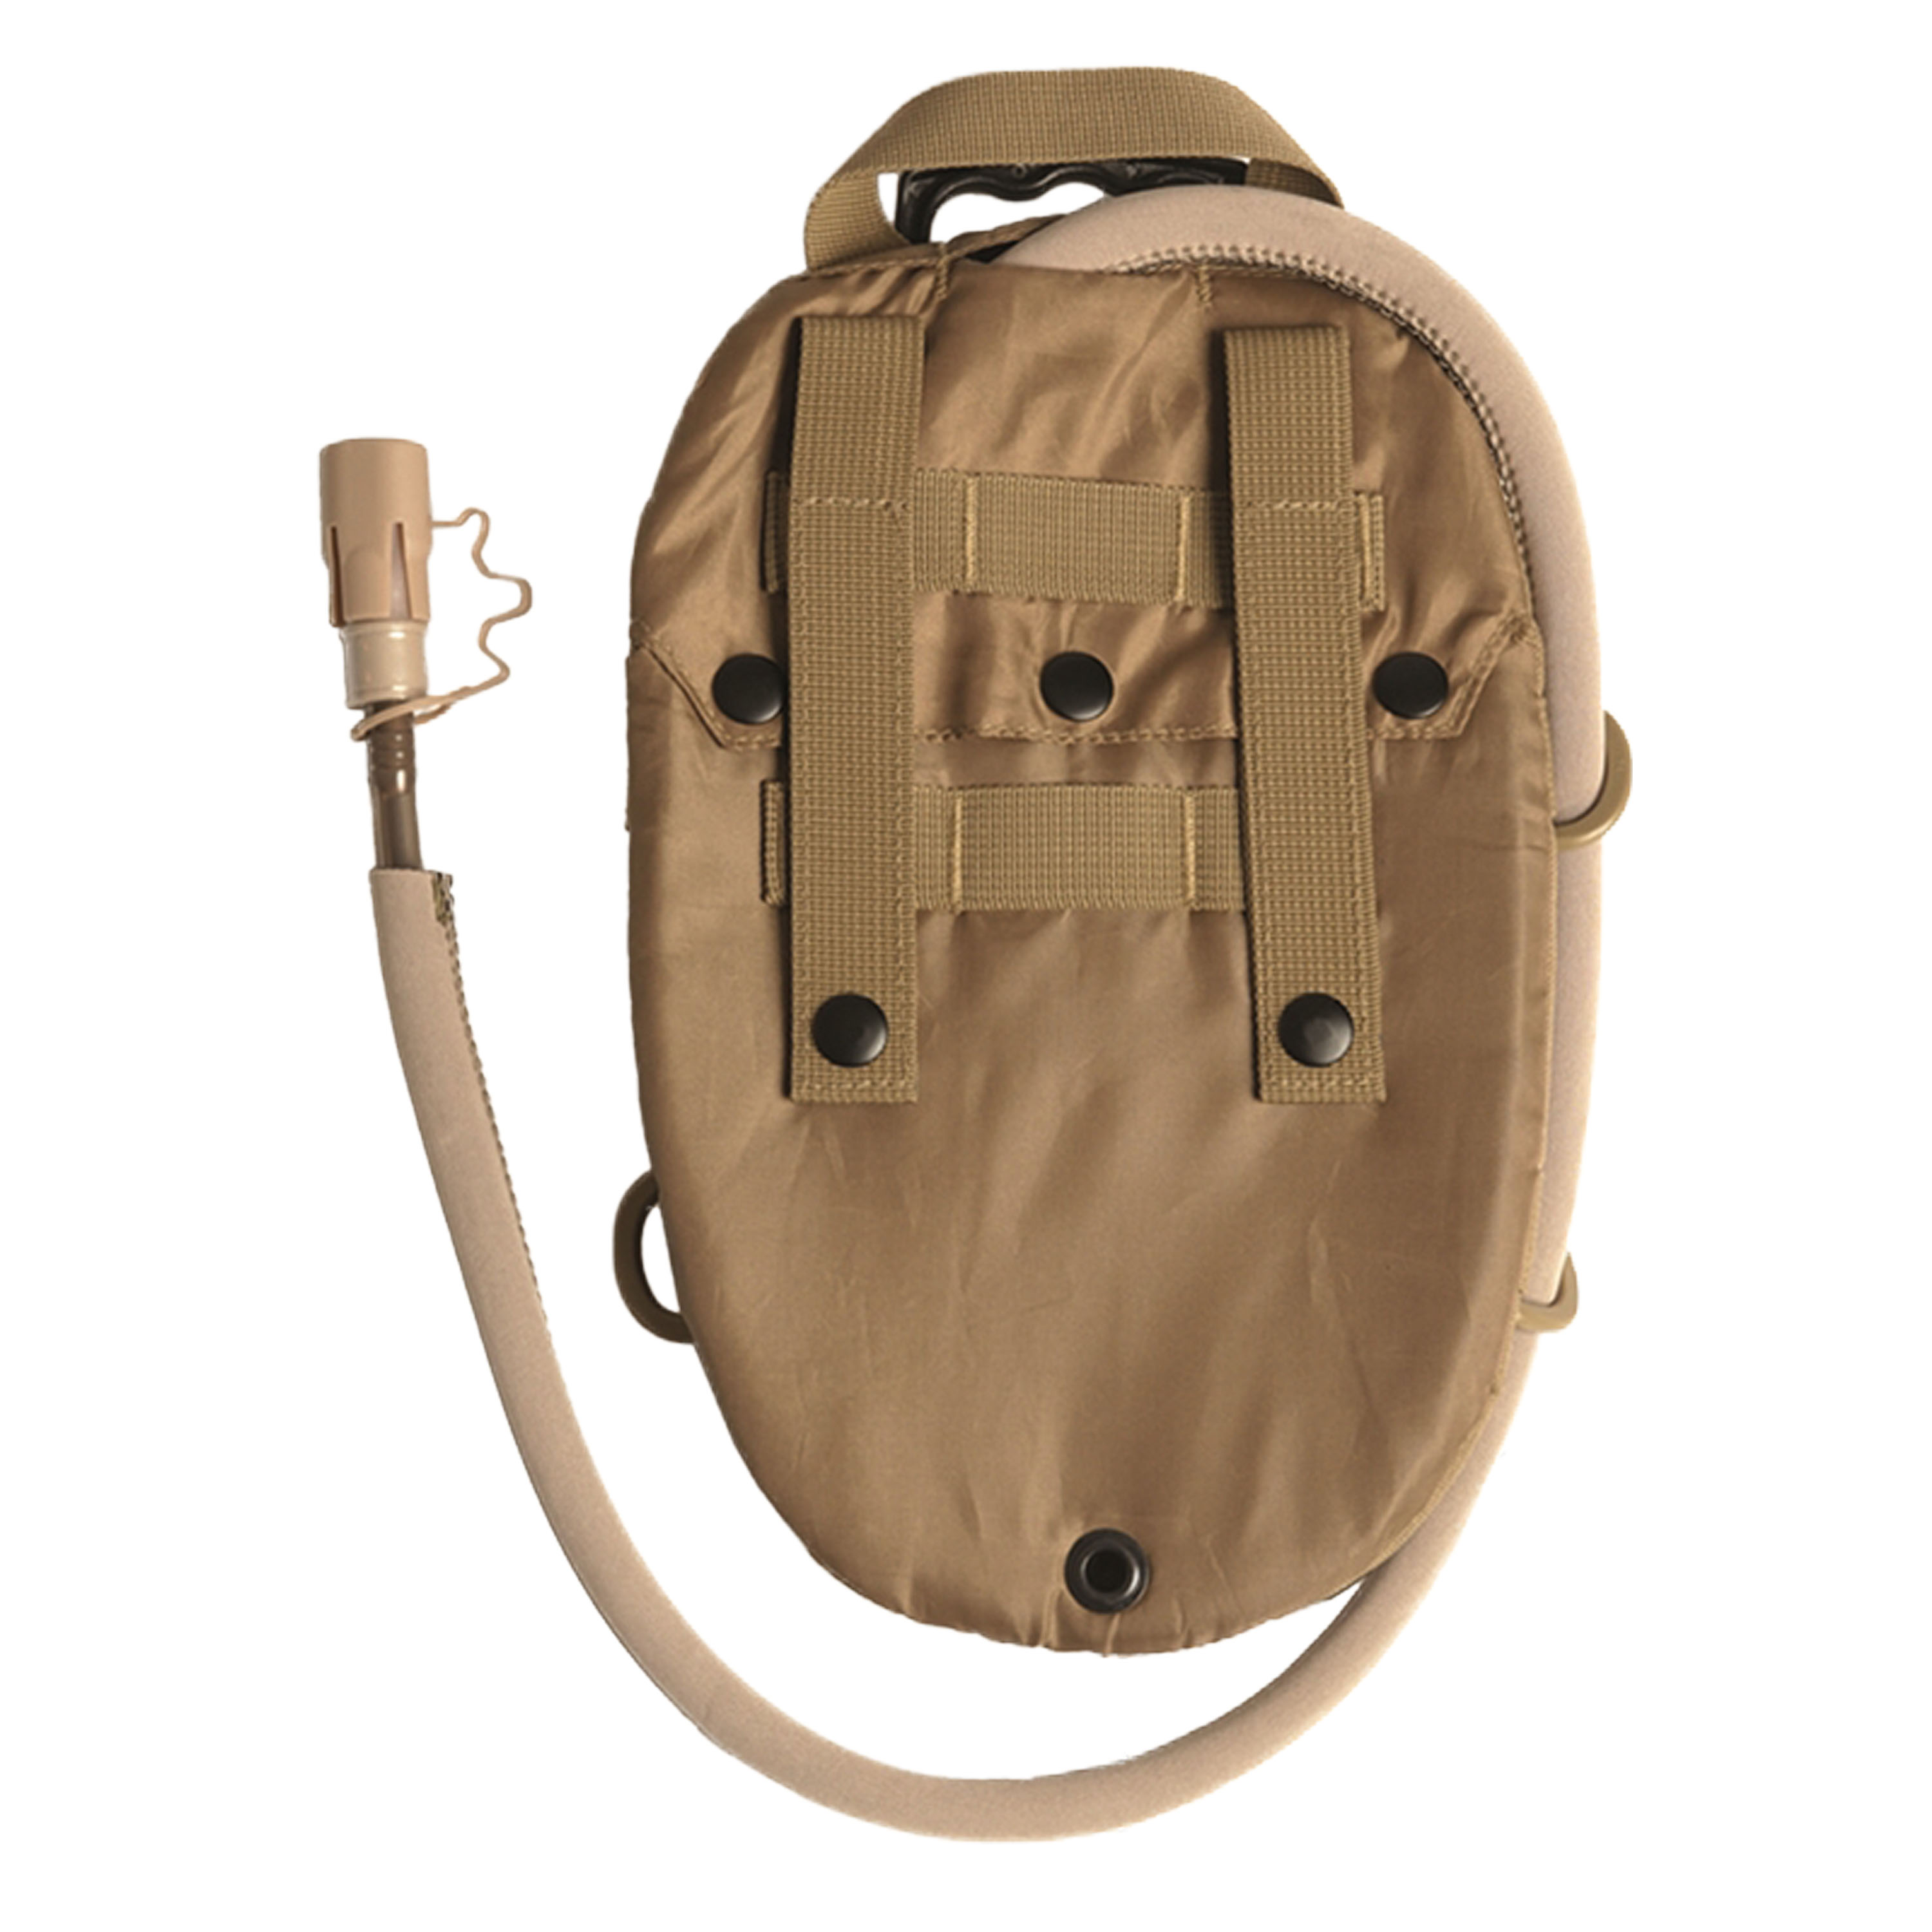 Sac d'Hydration ovale 1.5 L coyote